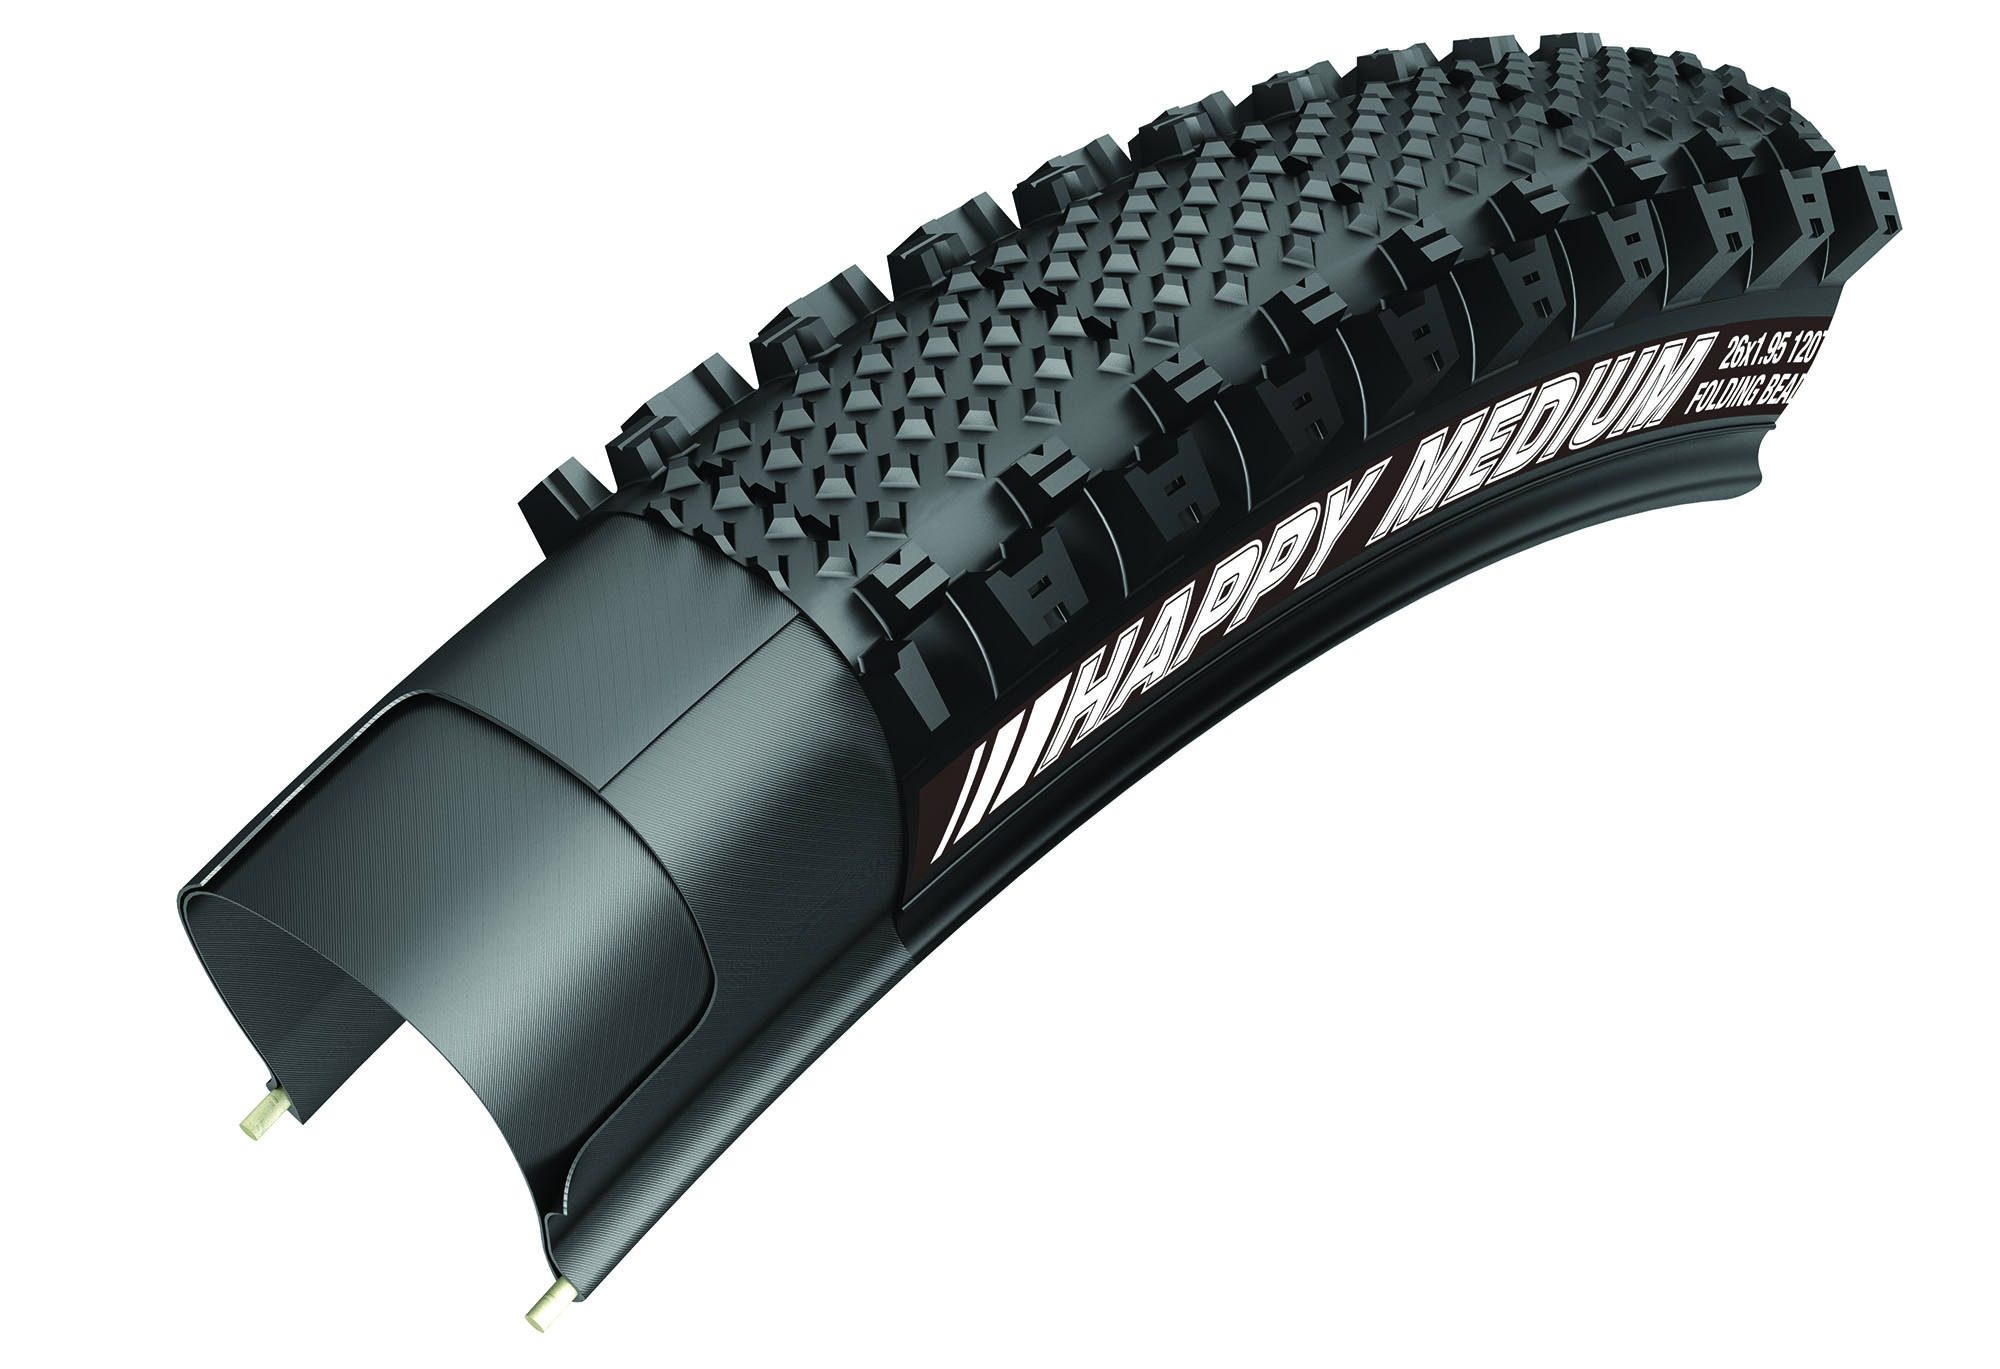 Kenda Tires Bicycle Happy Medium Pro Cyclocross Find A Schwalbe One 700 25 C Hover Over The Image To Zoom